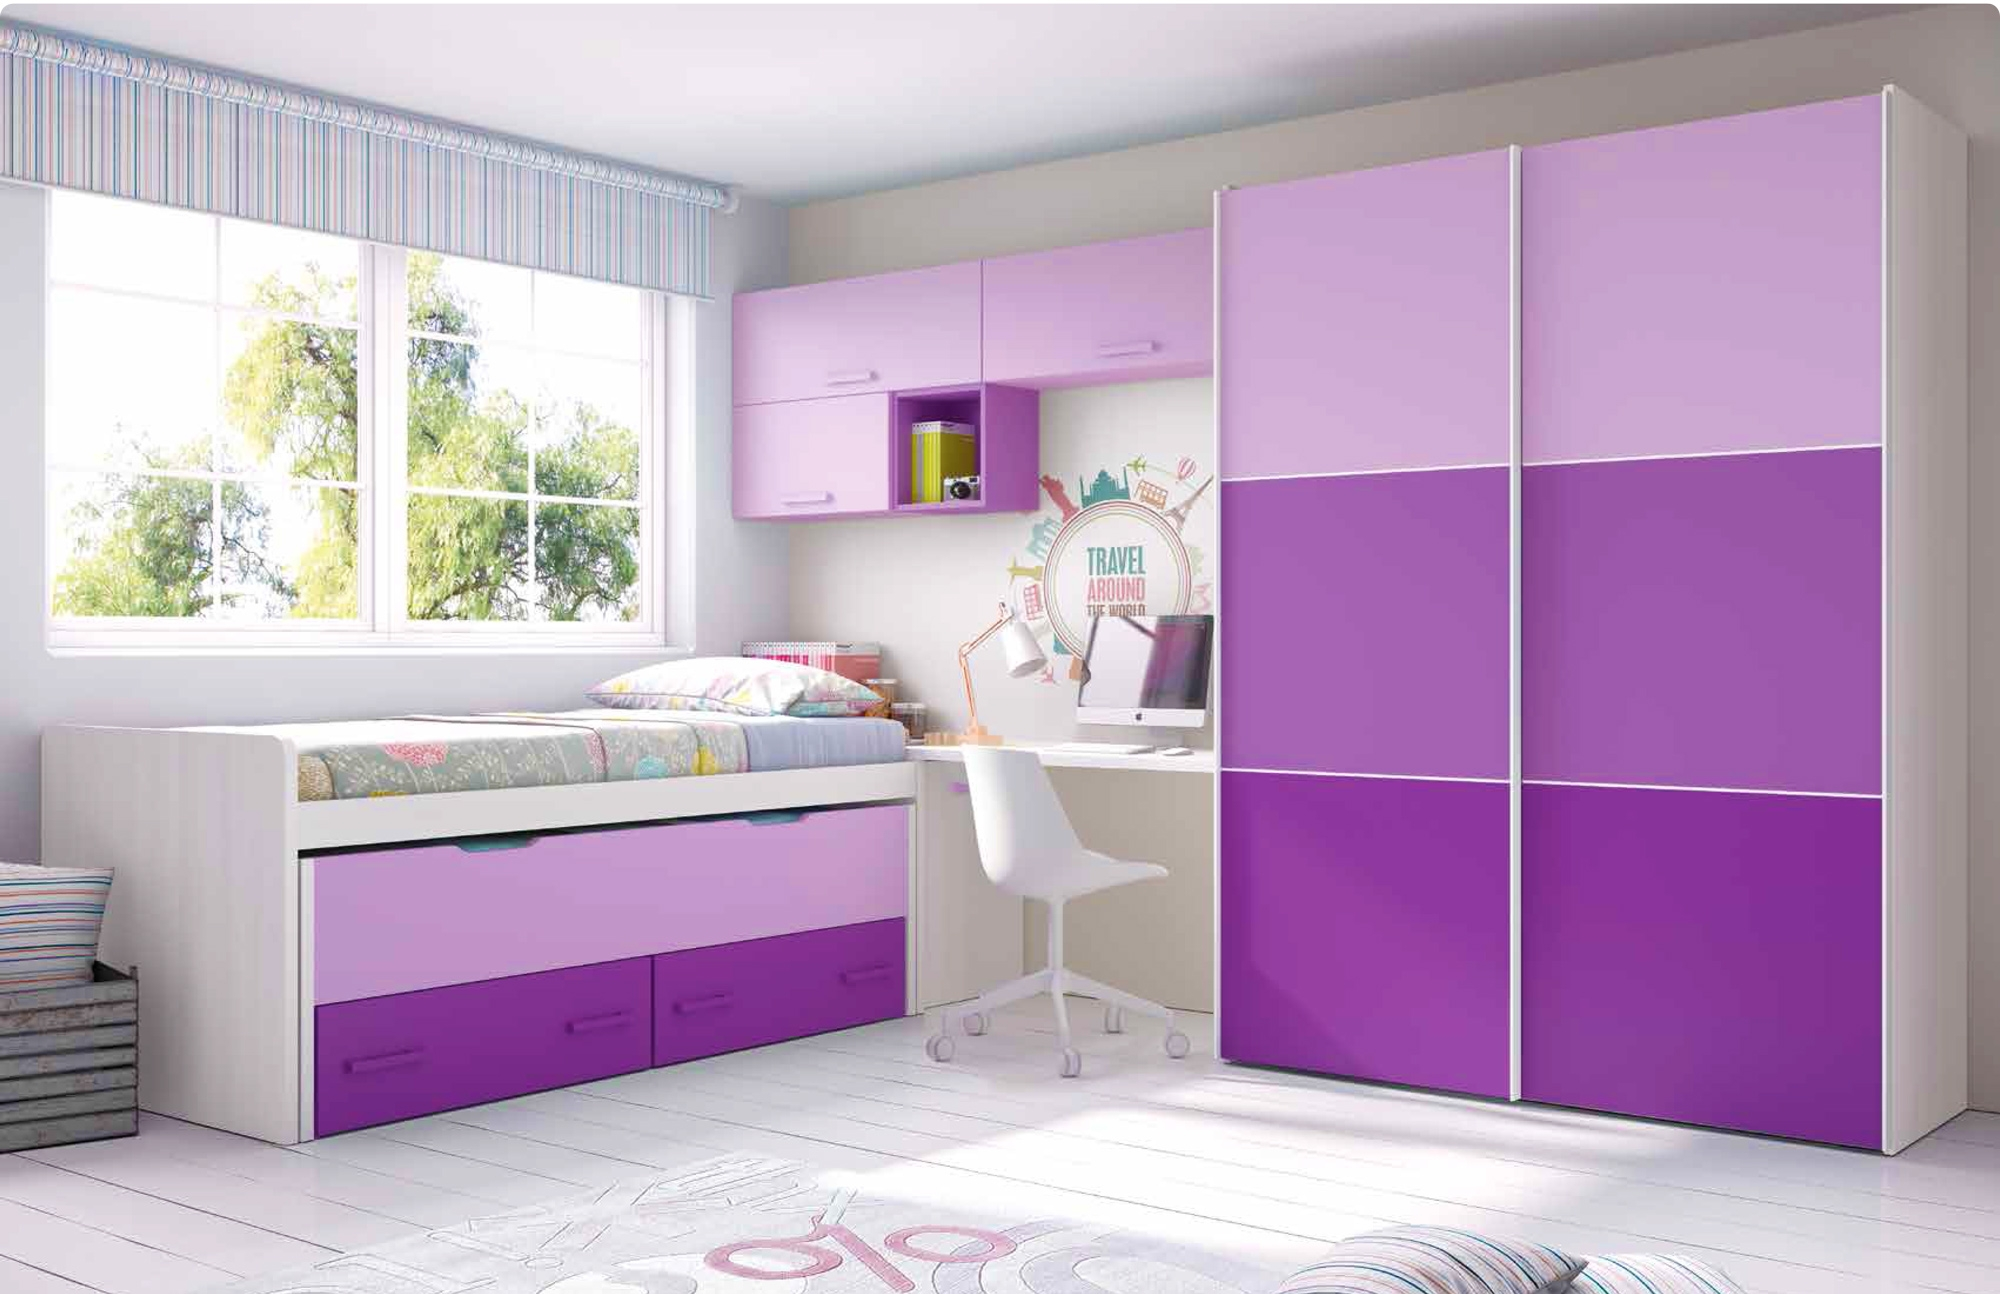 chambre ado fille moderne violet avec des id es int ressantes pour la conception. Black Bedroom Furniture Sets. Home Design Ideas